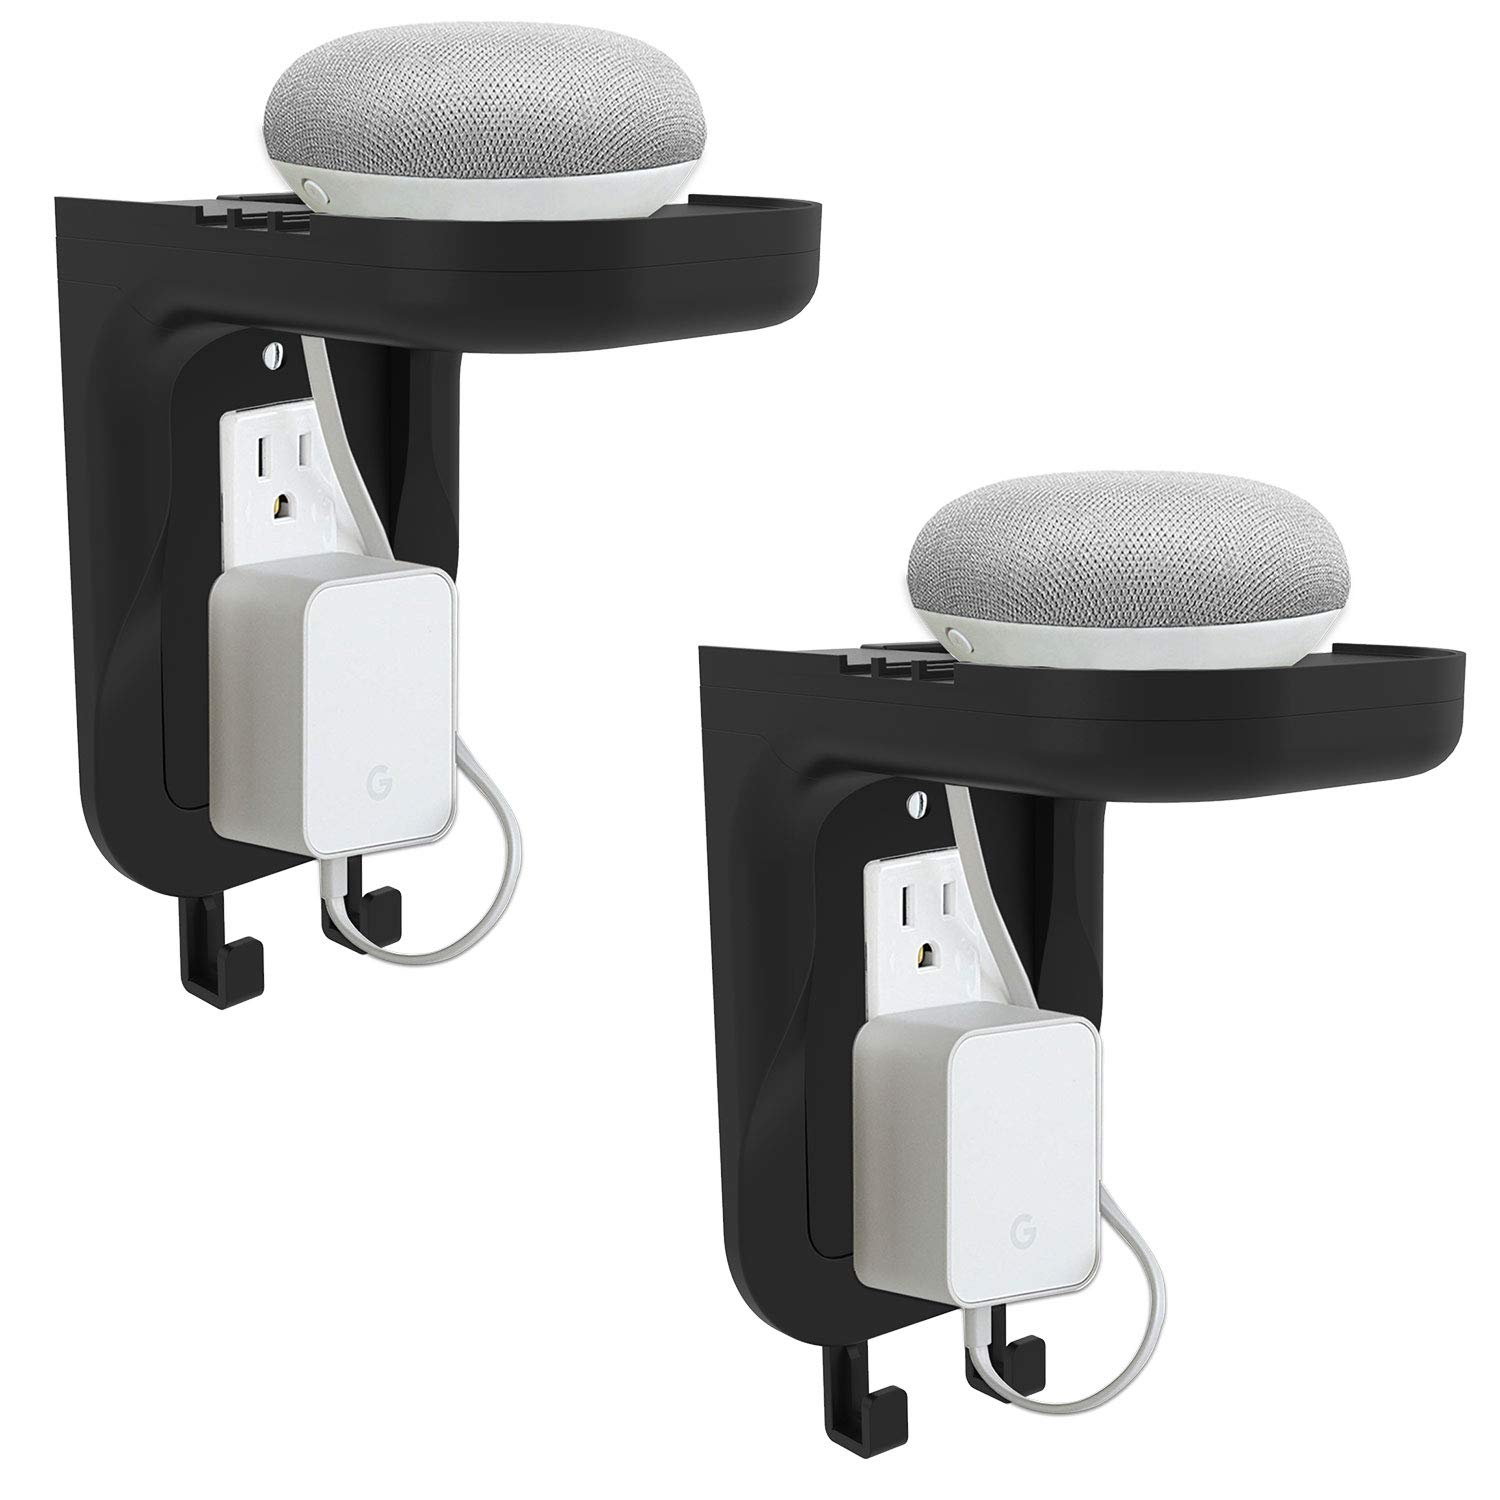 Google Home Black Speaker up to 20lbs with Cable Management and Detachable Hooks 2 Packs OSH002-B WALI Wall Bathroom Shelf Standard Vertical Duplex GFCI D/écor Outlet Charging for Cell Phone Dot